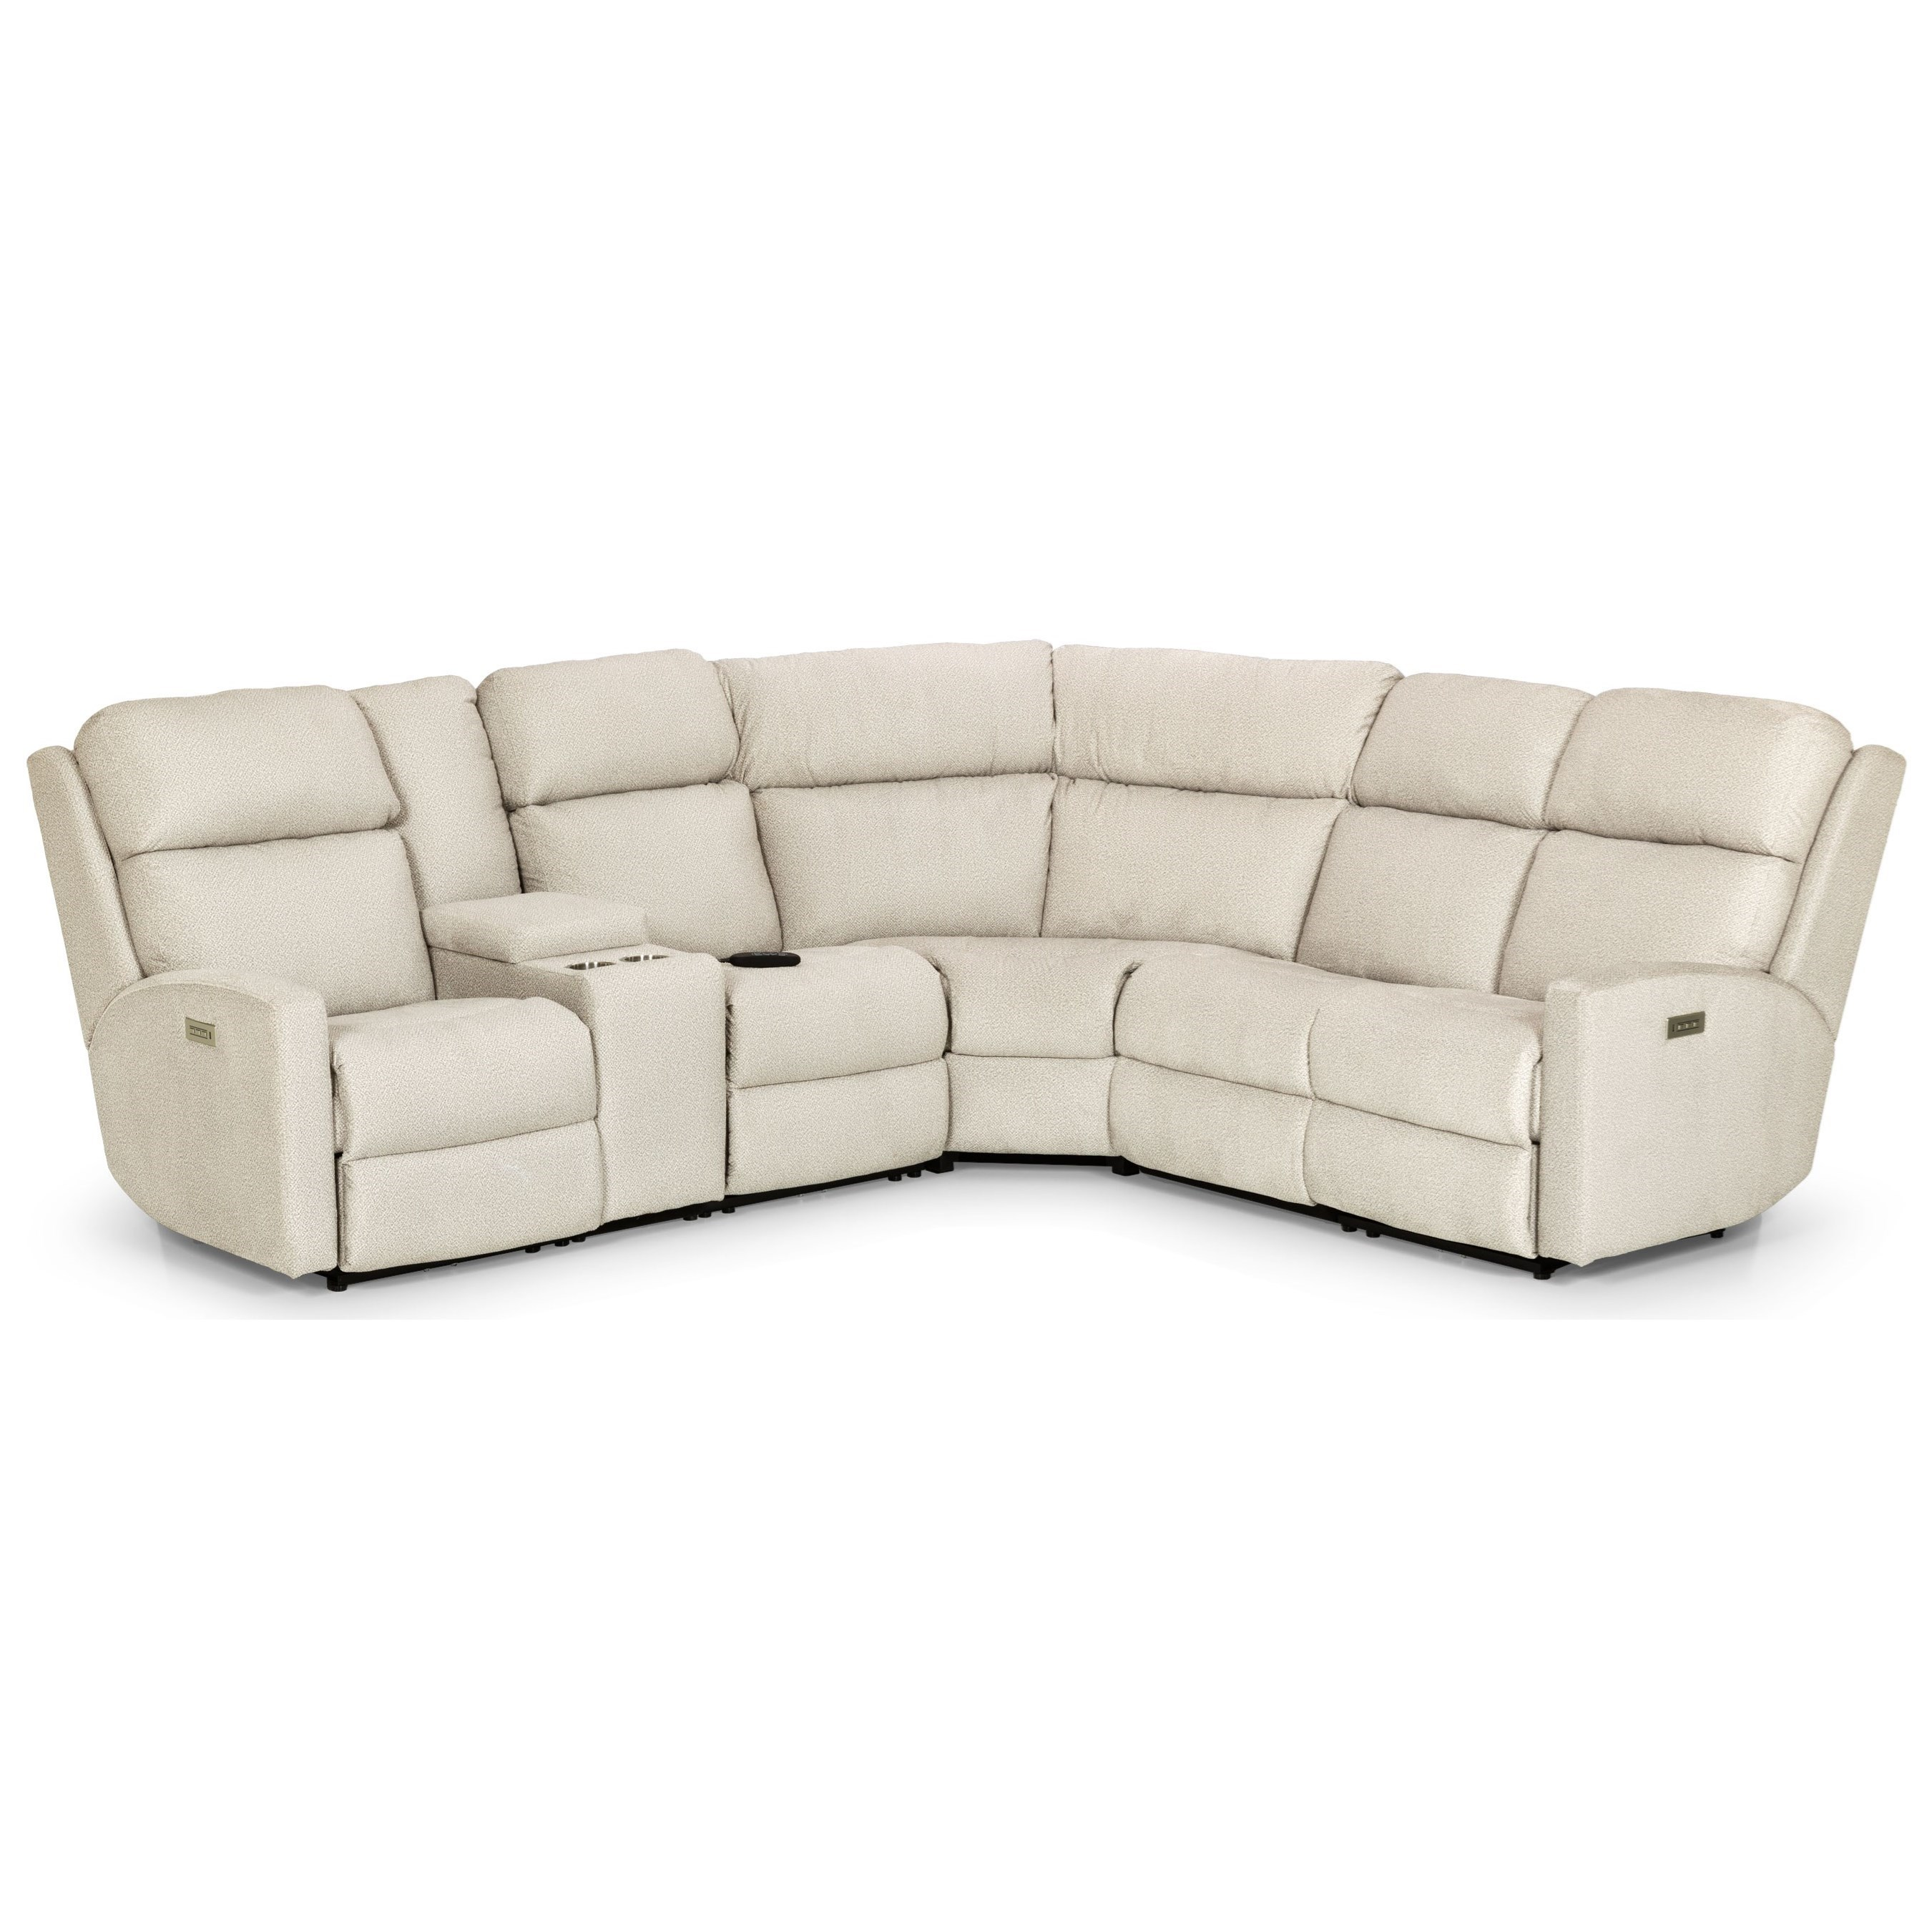 857 4-Seat Pwr Recl Sectional w/ Pwr Head/Lumbar by Stanton at Wilson's Furniture